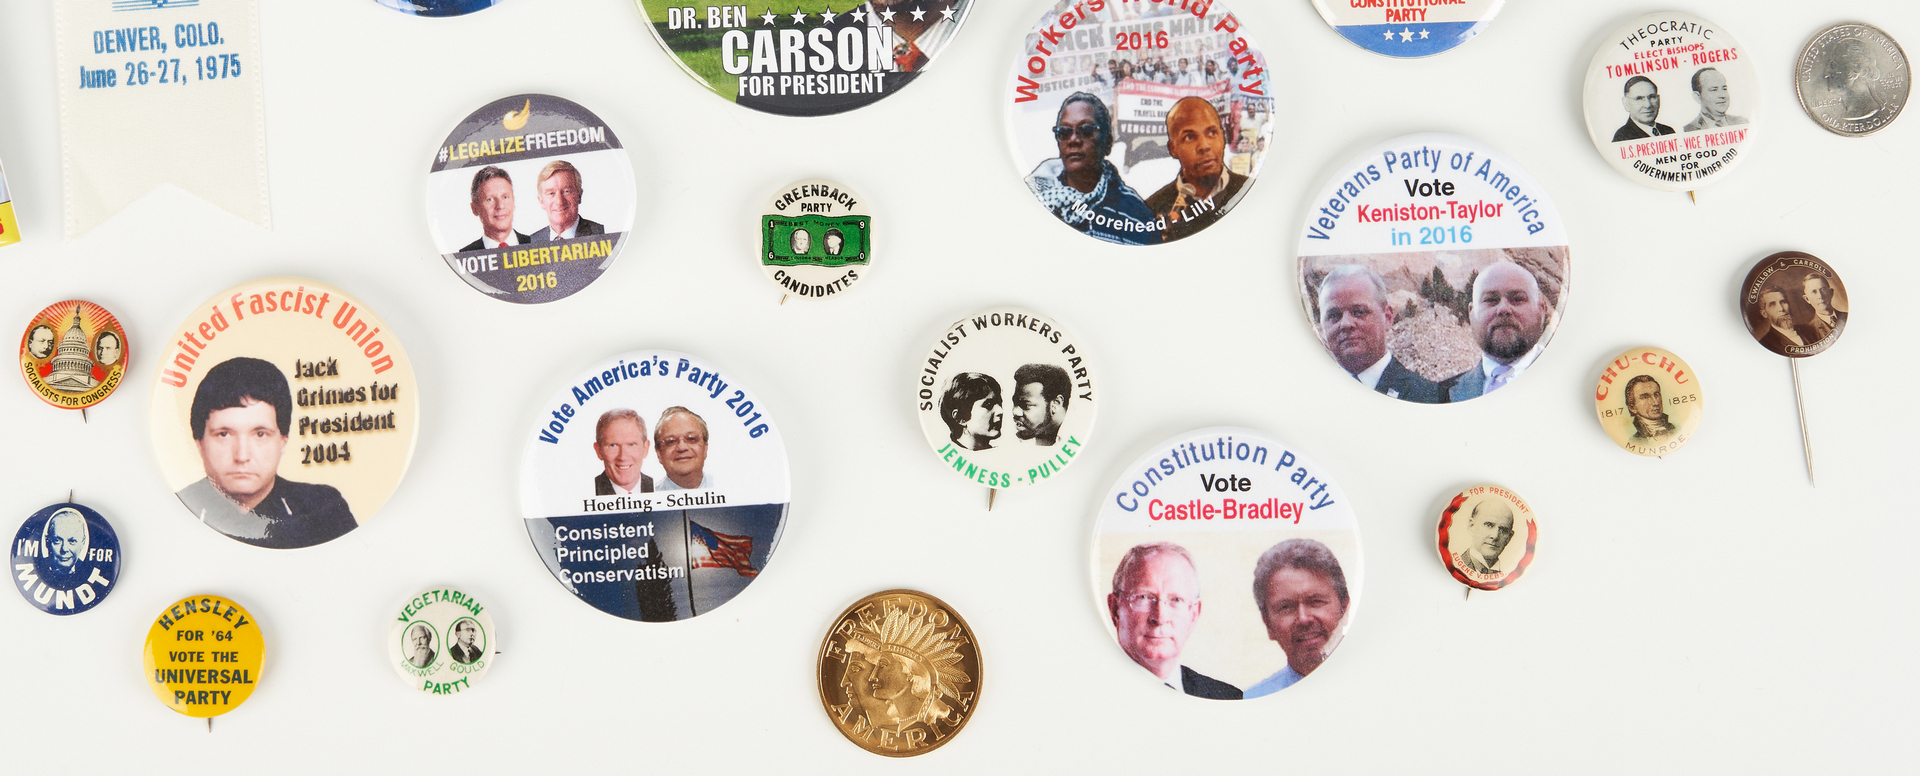 Lot 1017: 30 Third Party Candidate Ephemera Items, incl. Buttons